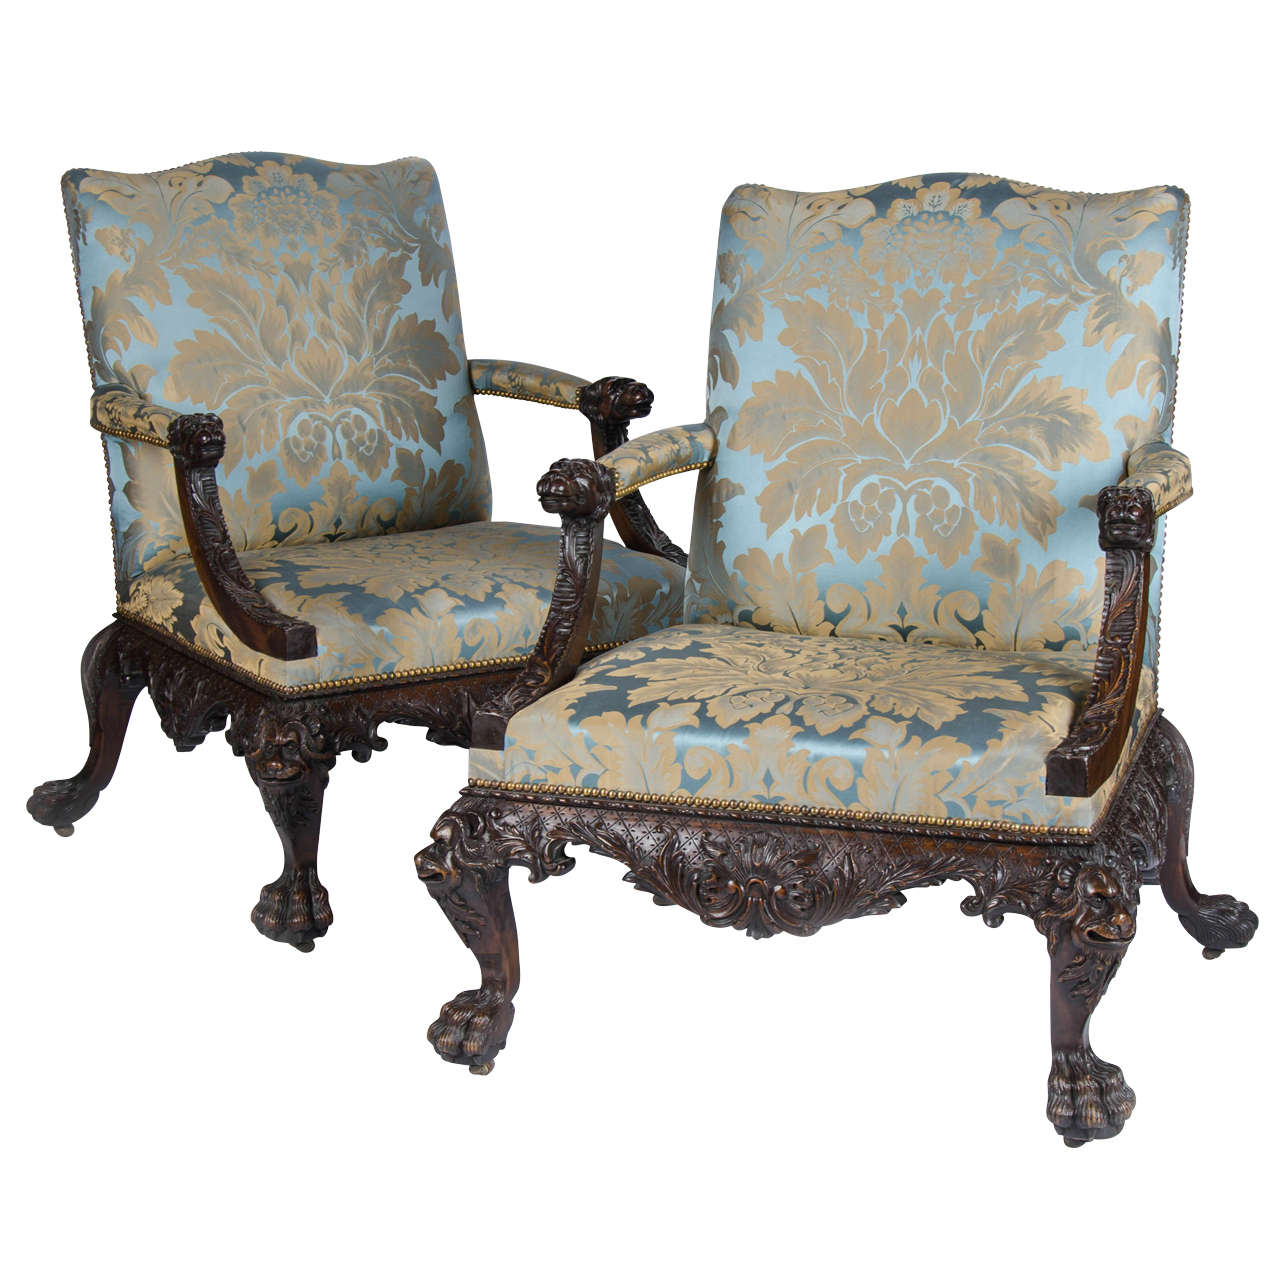 Superb Pair Of Carved Mahogany Open Arm Chairs In The Georgian Style For